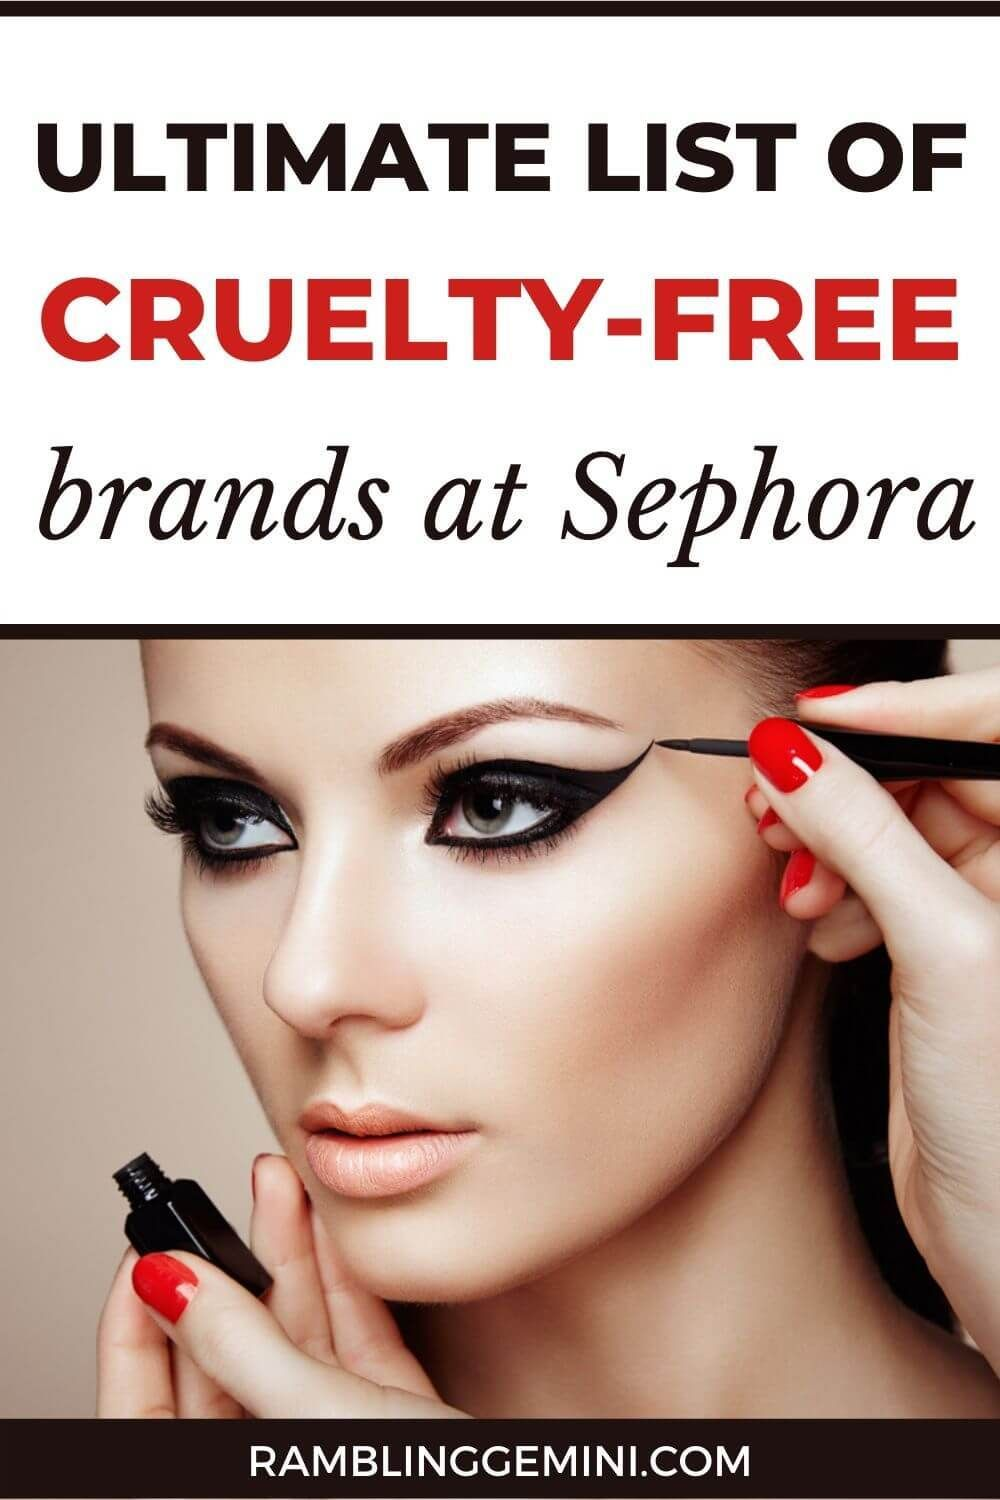 Pin on CrueltyFree Products & Brands